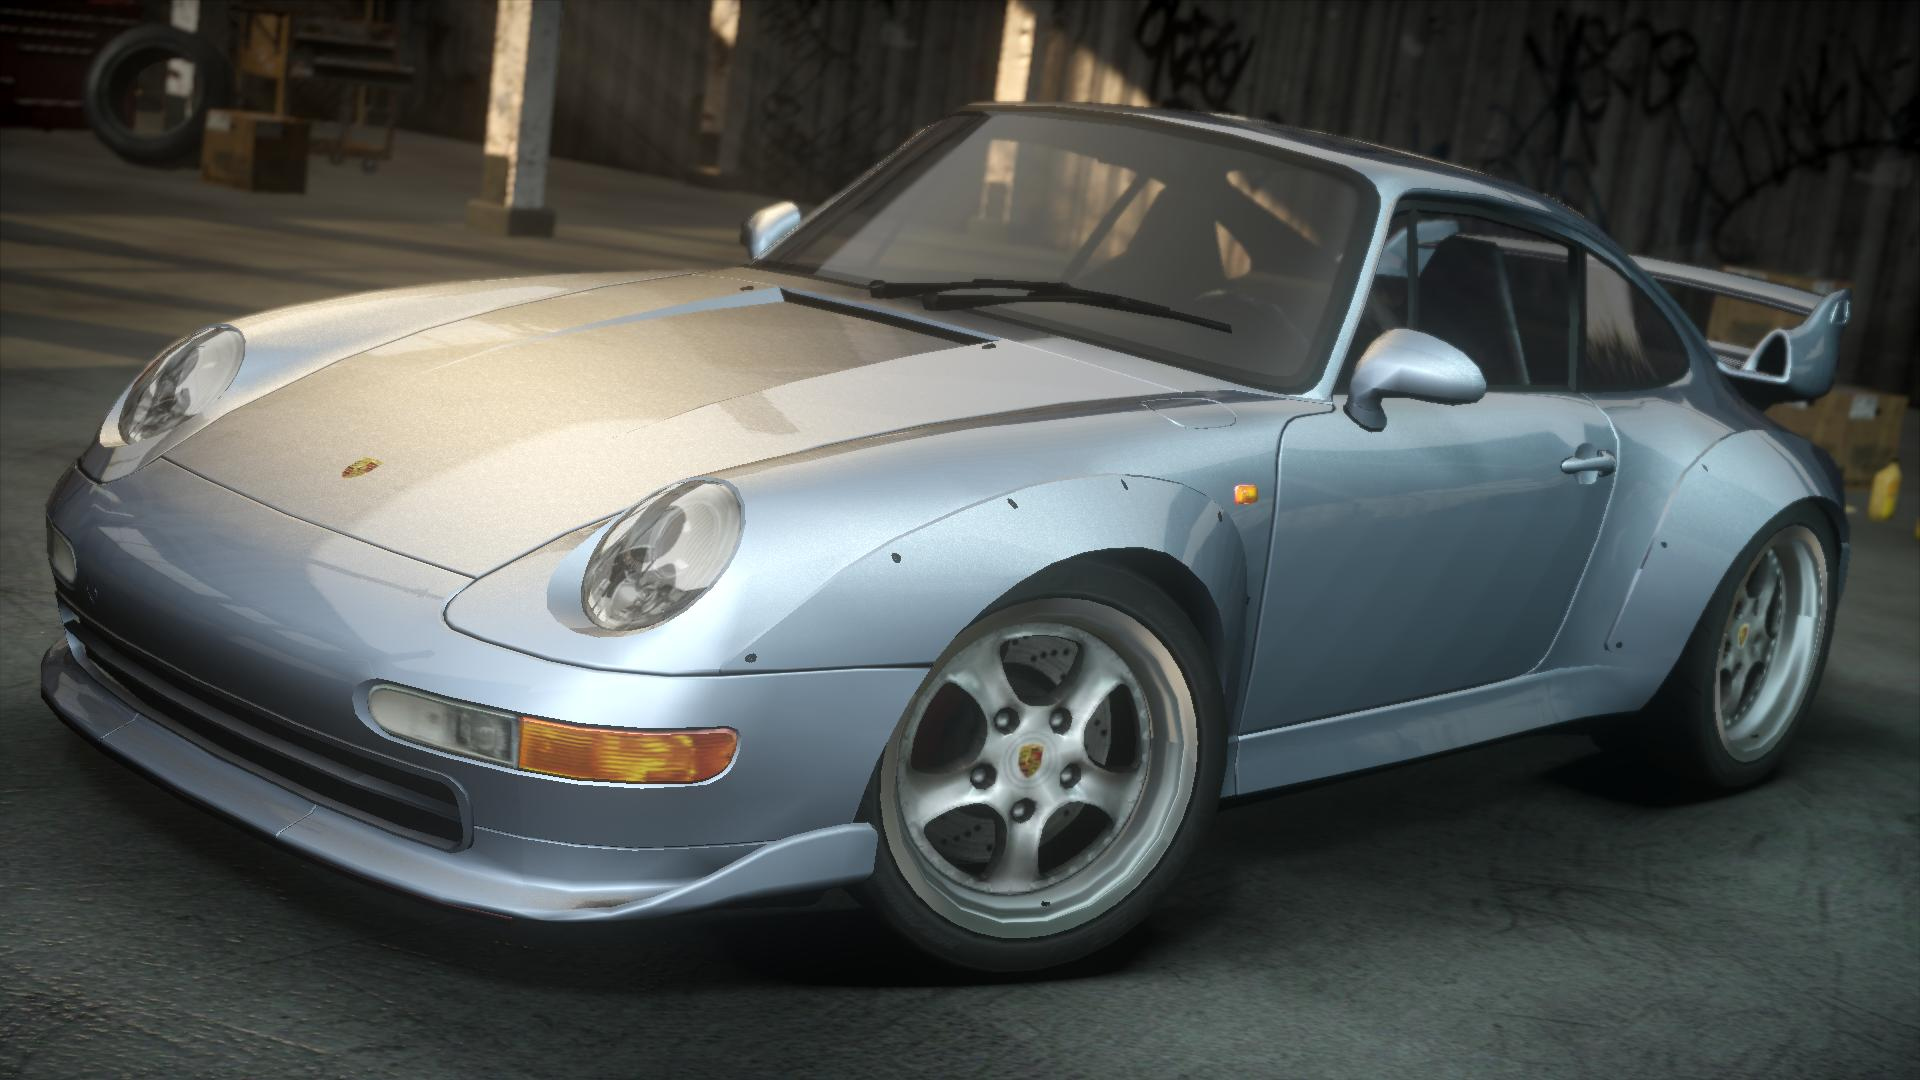 porsche 911 gt2 993 need for speed wiki fandom powered by wikia. Black Bedroom Furniture Sets. Home Design Ideas